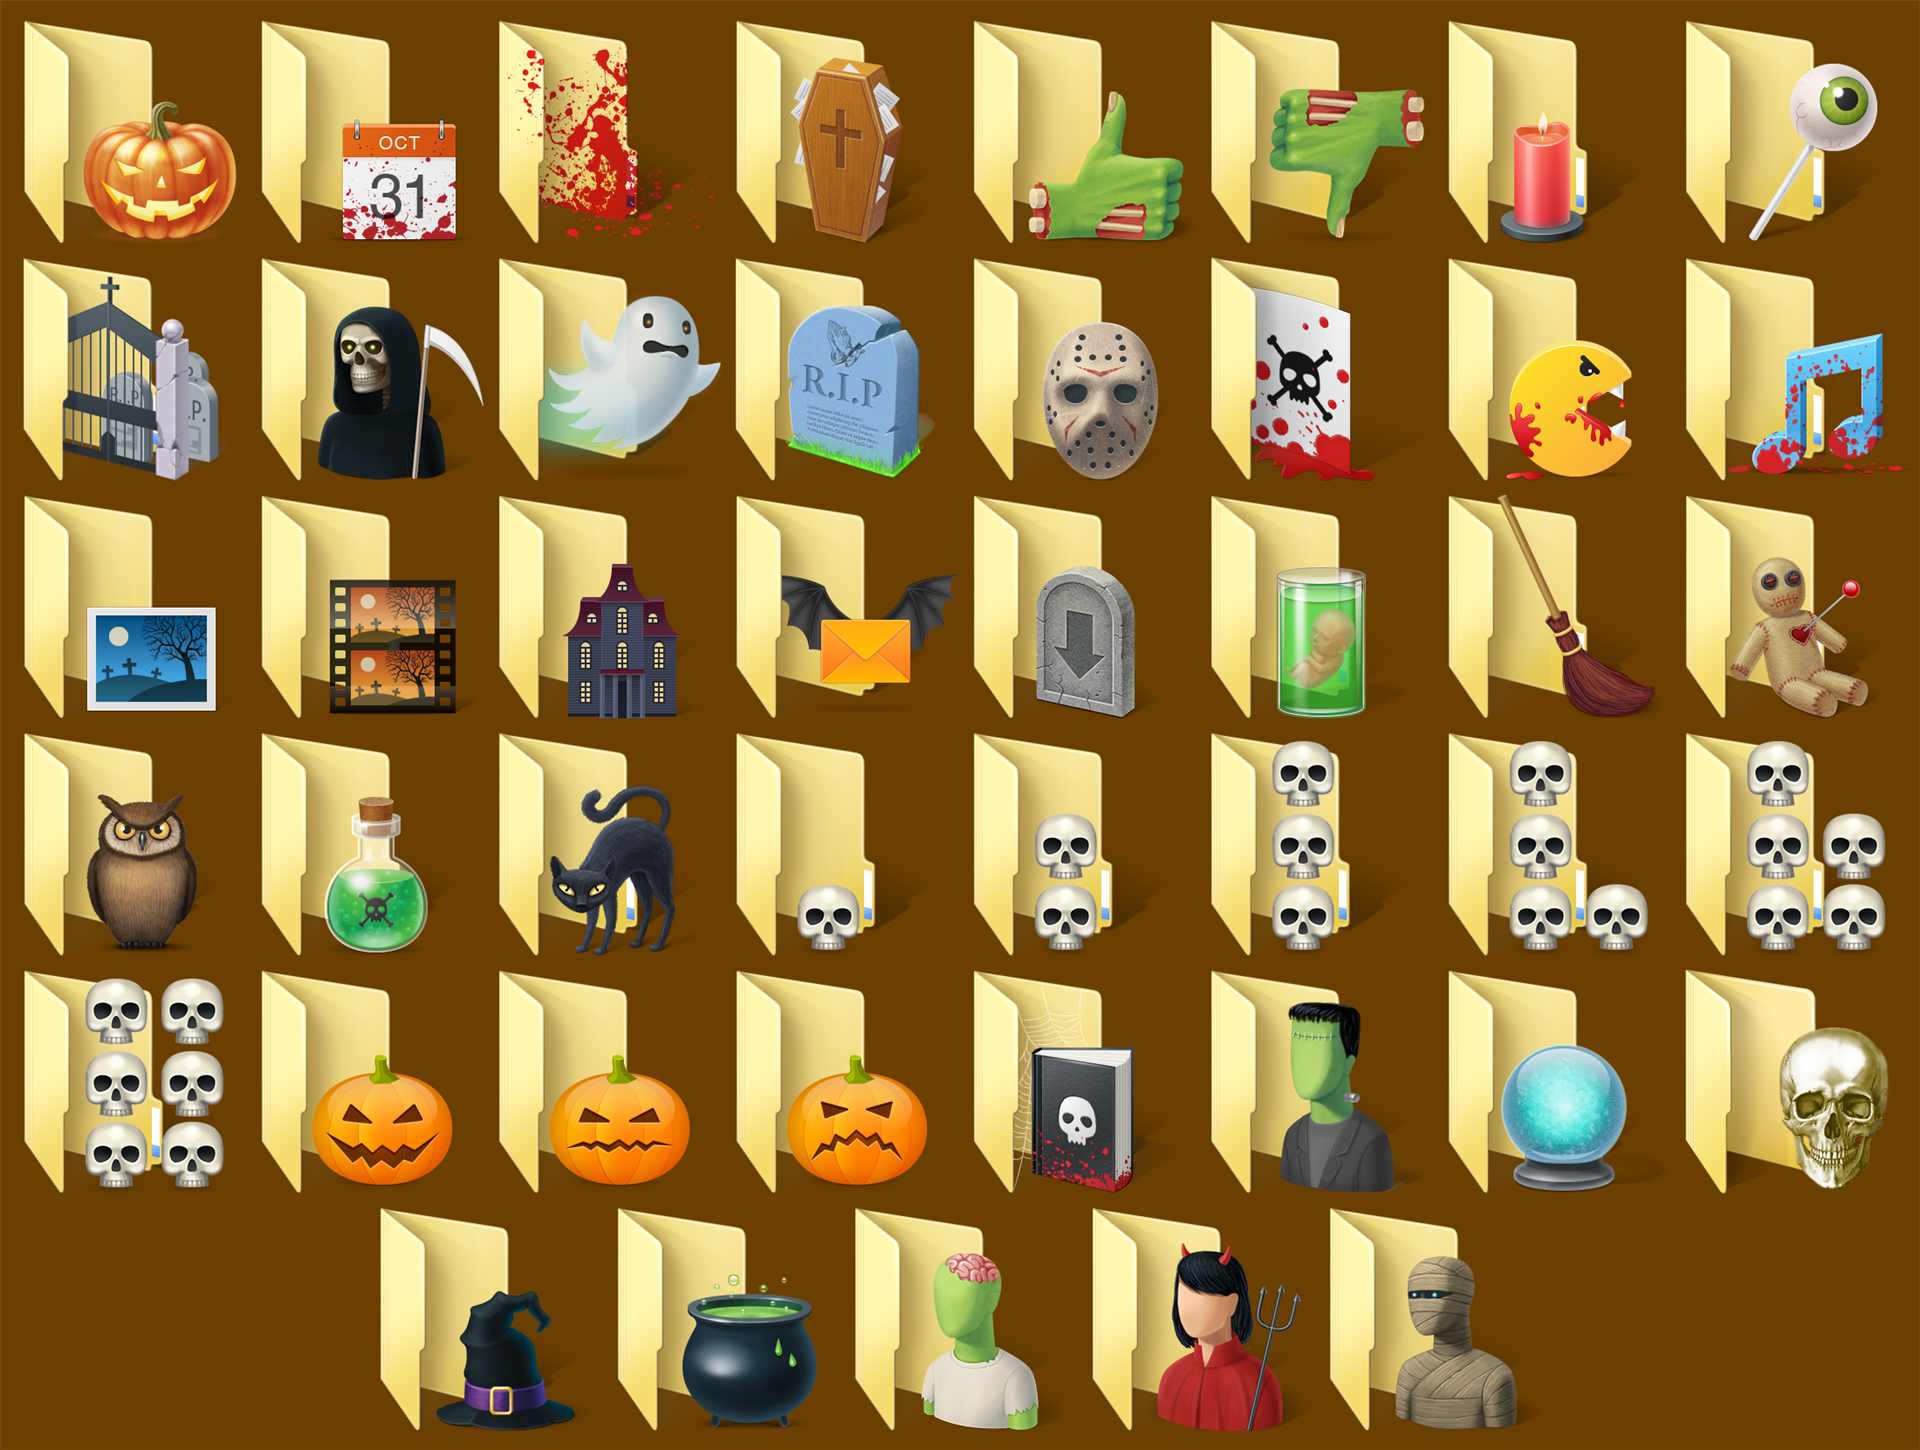 Folder Marker Pro + Halloween Folder Icons Bundle Screenshot